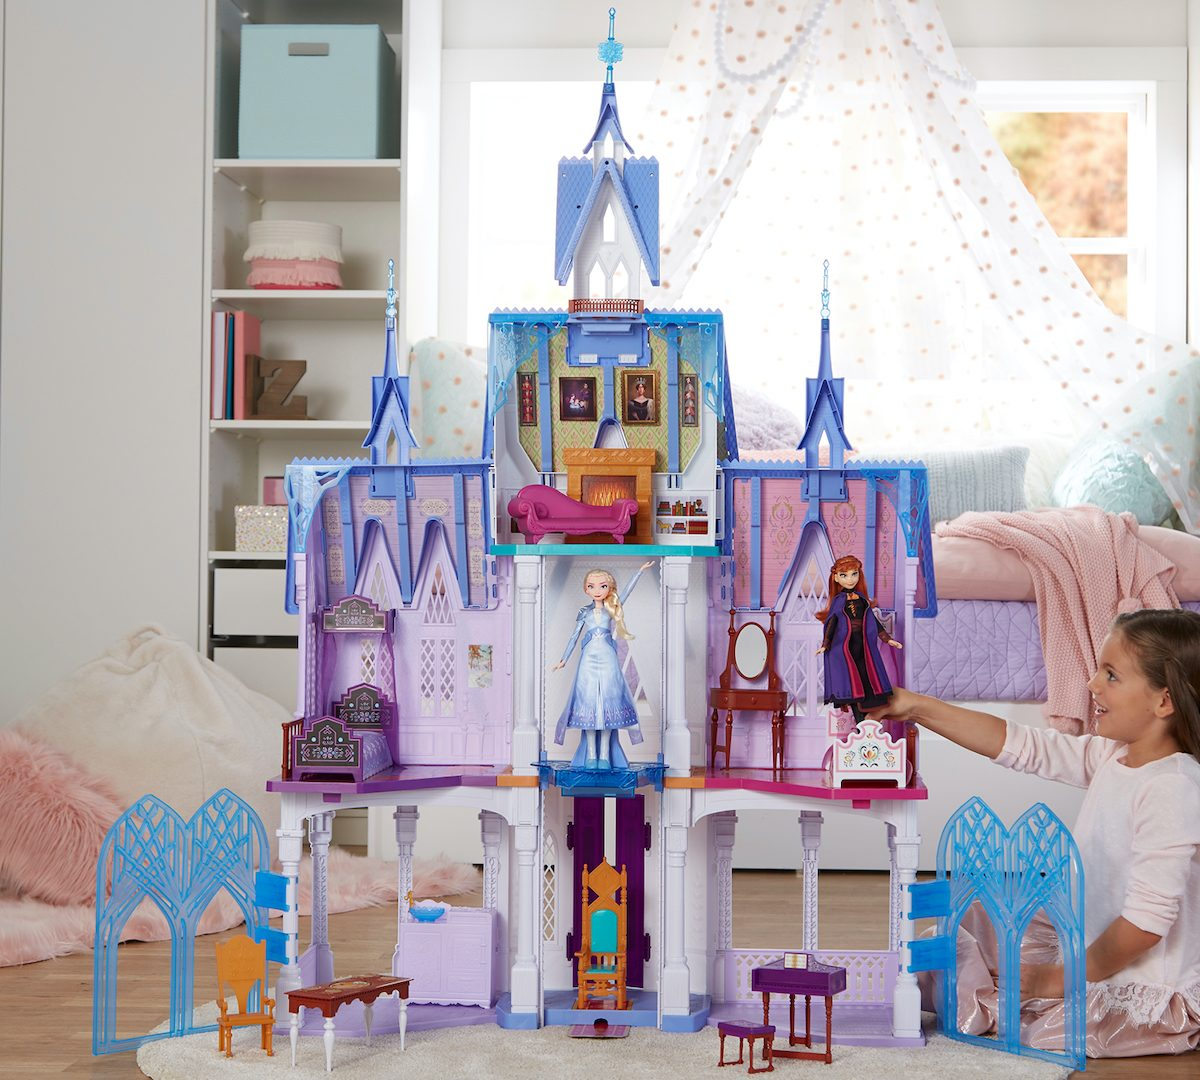 girl playing with Disney Frozen Ultimate Arendelle Castle in bedroom